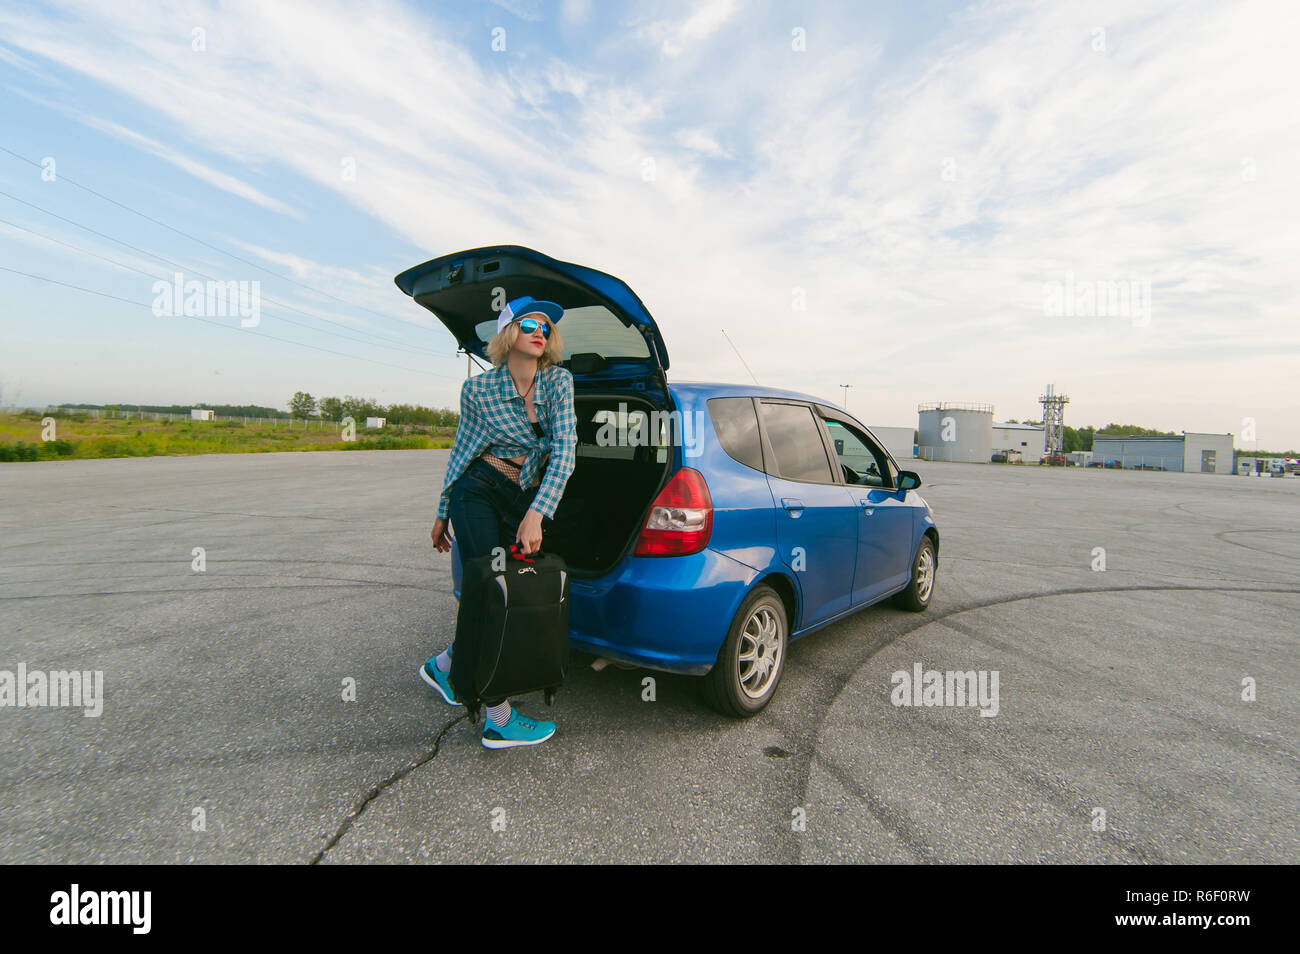 young slim woman dressed in blue checked shirt, cap and jeans, Will depart at dawn on summer day on freedom trip with black travel suitcase. Takes out a bag from the car - Stock Image